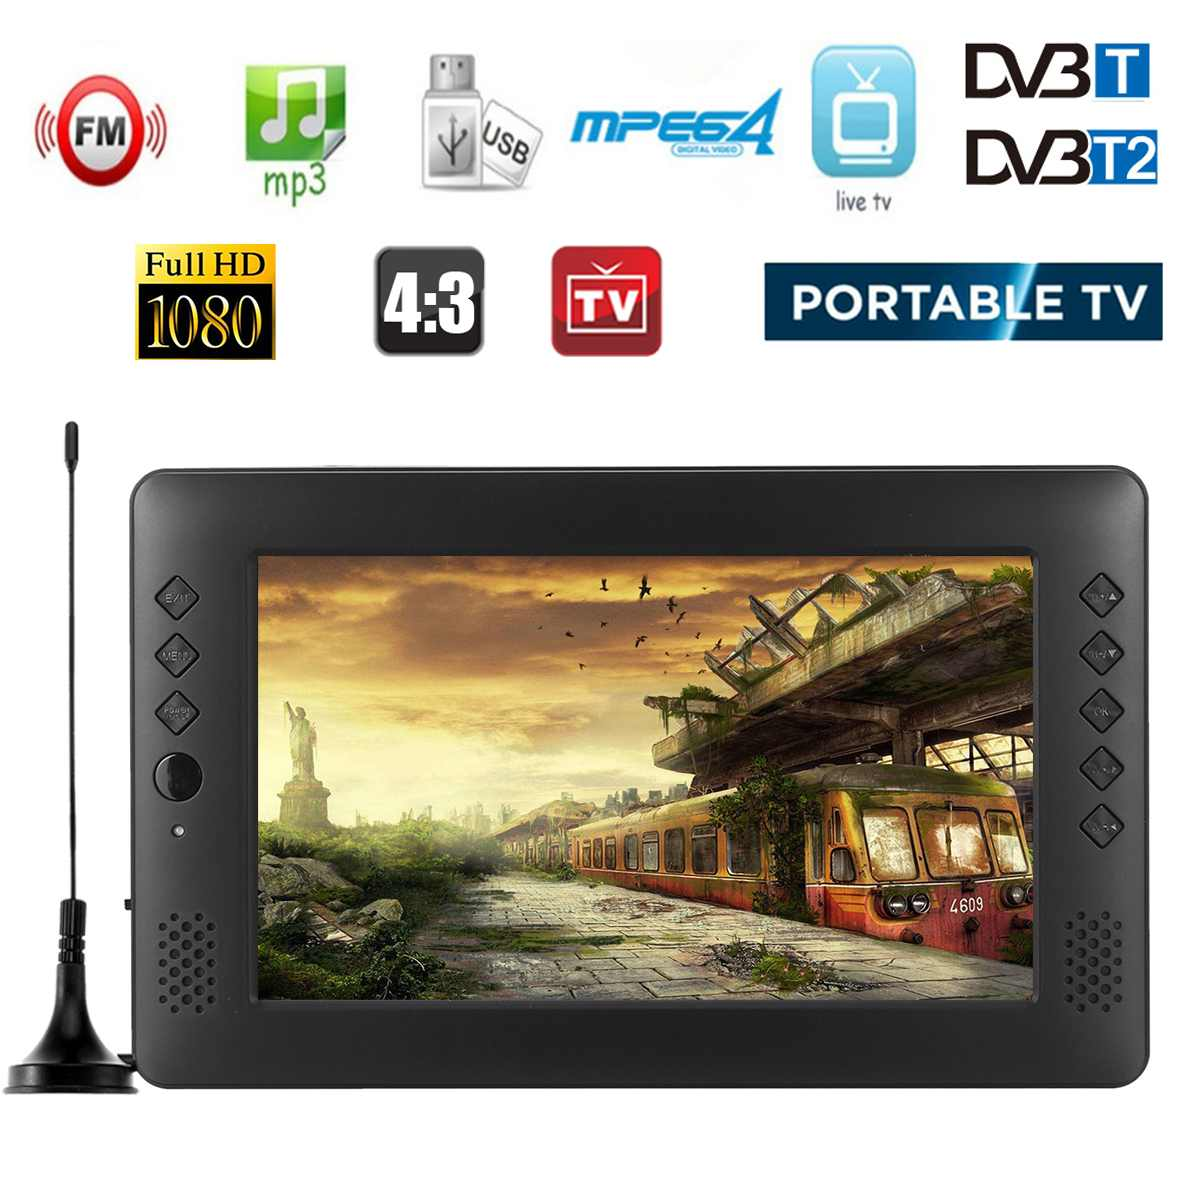 12V 9 inch HD Portable Mini WiFi Digital and Analog <font><b>TV</b></font> DVB-T2 DVB-T DTV ATV <font><b>Car</b></font> Smart Television USB TF Card MP4 Audio Video image